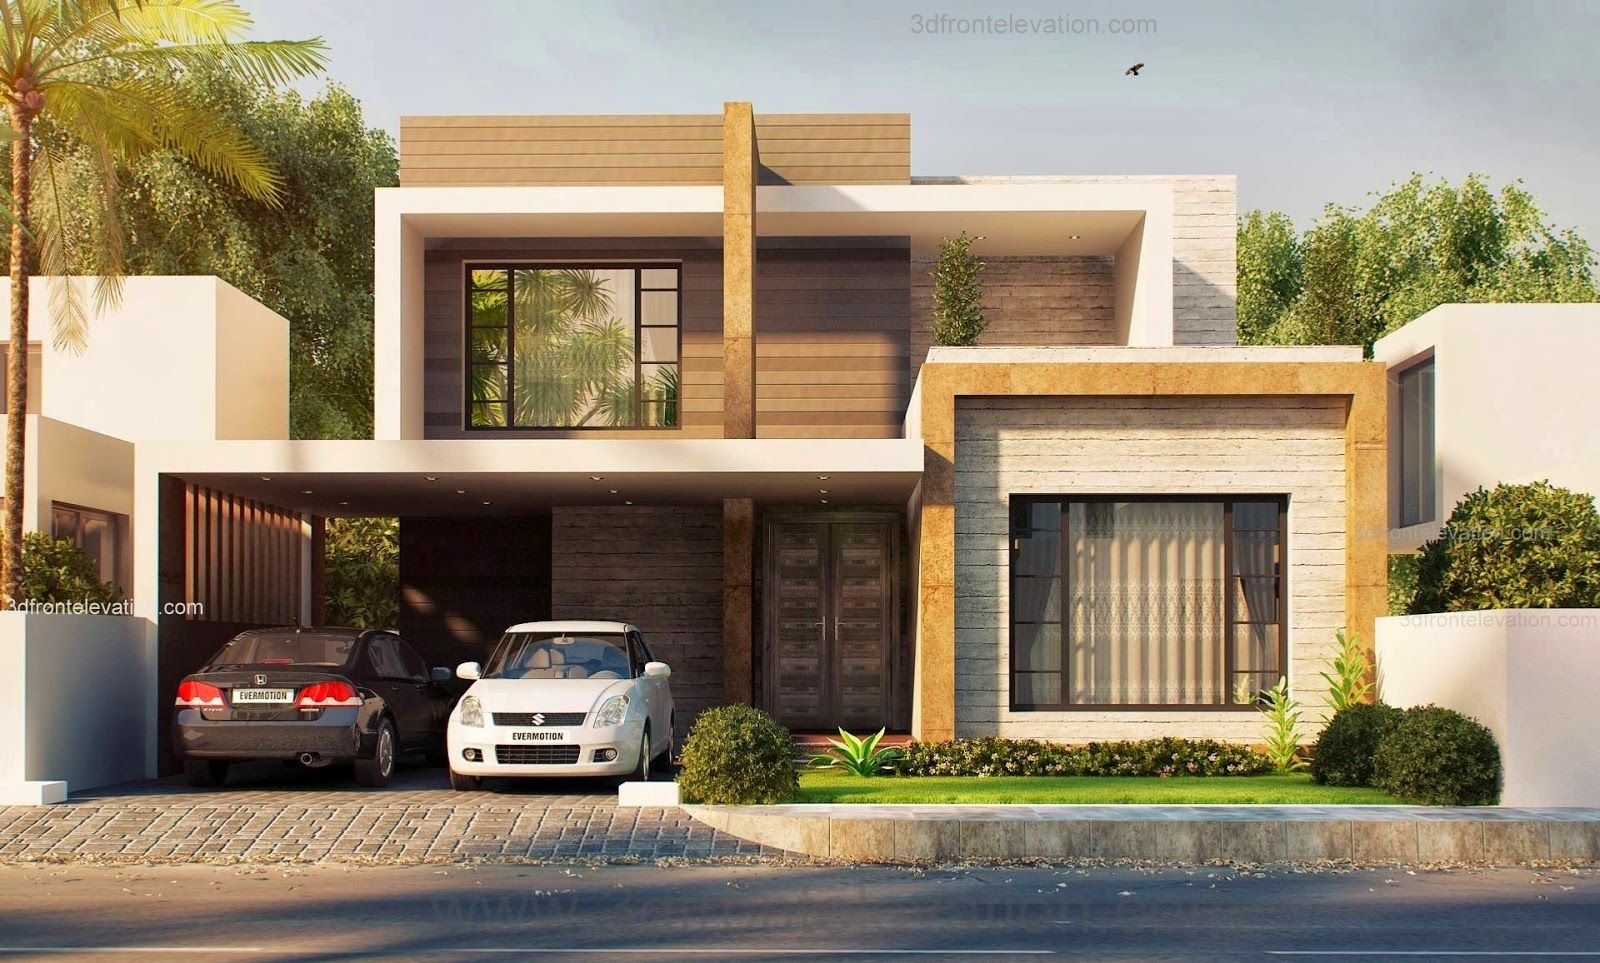 10 Marla Modern House Plan Beautiful Latest Pakistani Design for. 10 Marla Modern House Plan Beautiful Latest Pakistani Design for